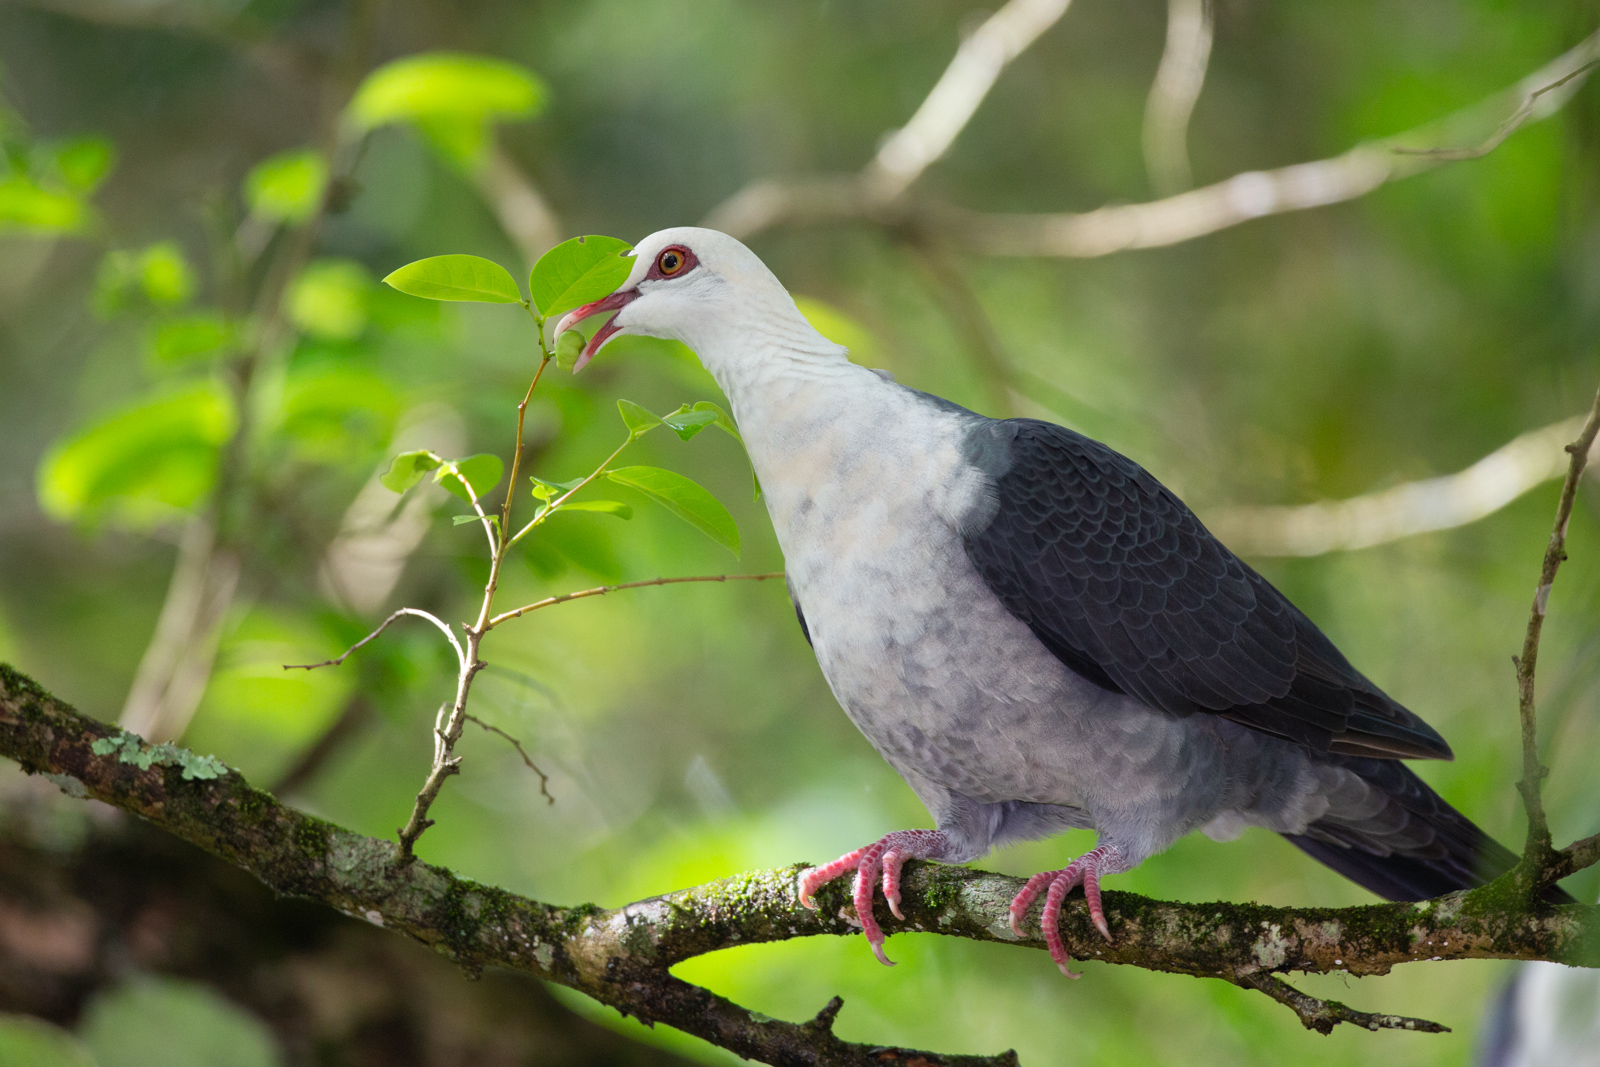 White-headed Pigeon_David Stowe-8371.jpg